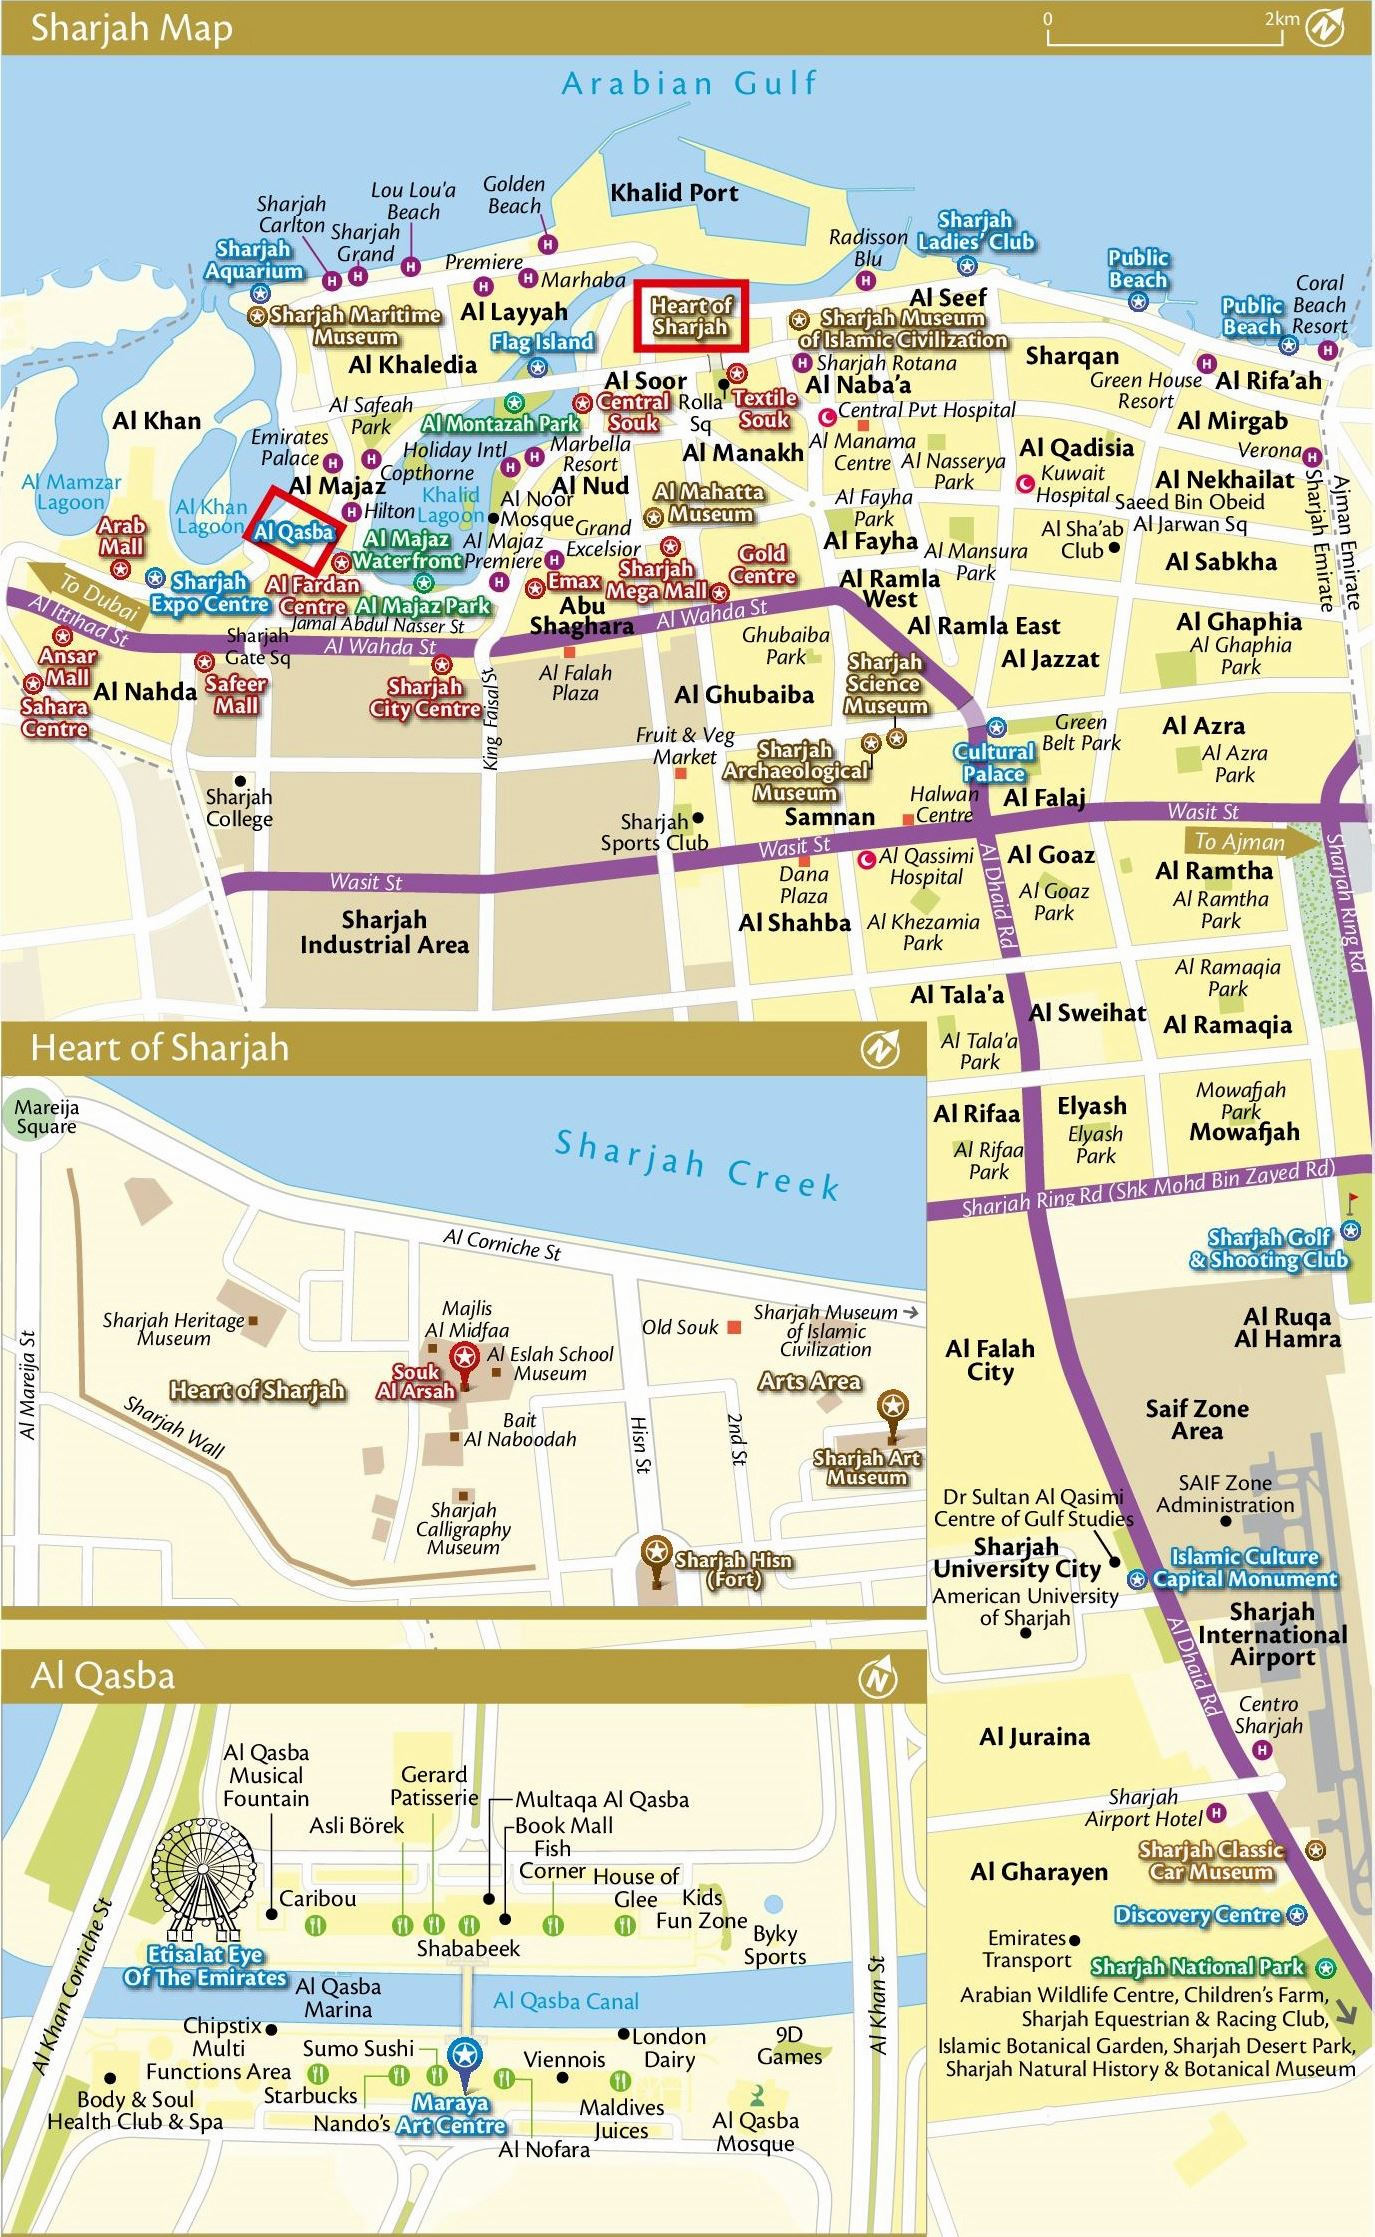 Large sharjah maps for free download and print high resolution and large map of sharjah 1 gumiabroncs Choice Image